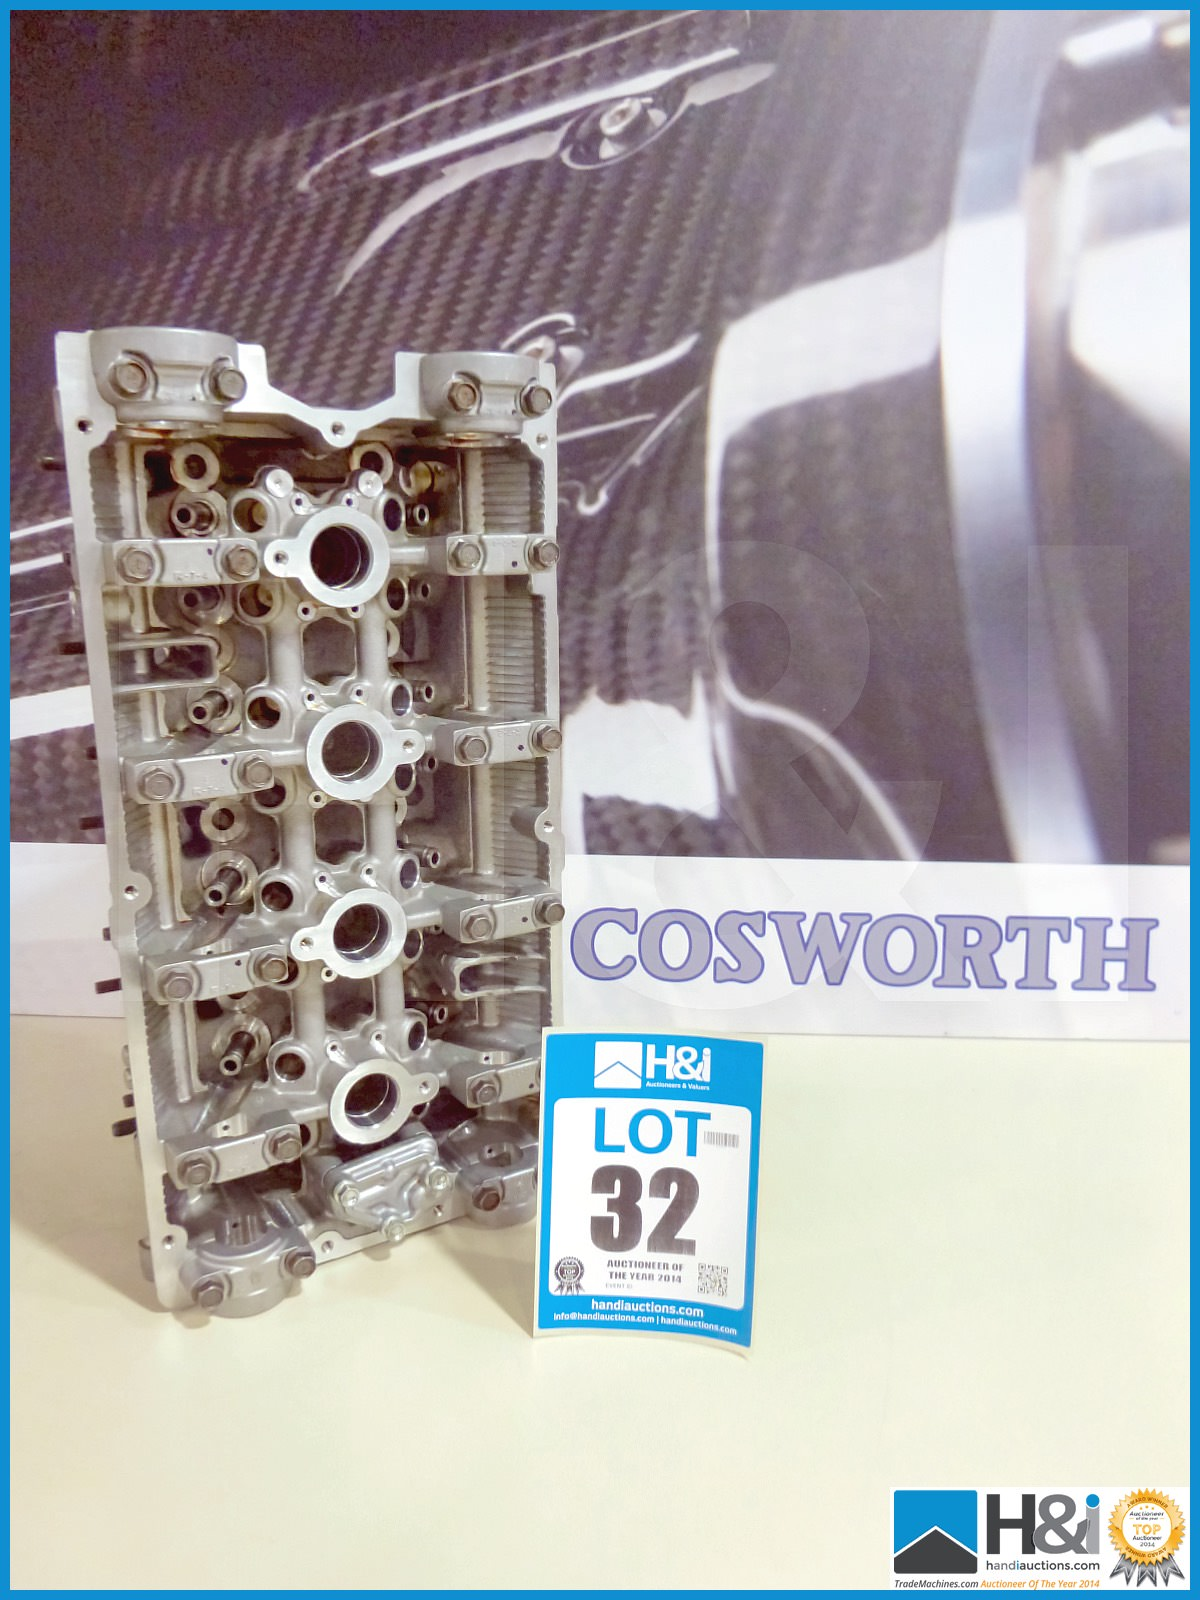 Mitsubishi Evo 9 ported cylinder head  Appx value GBP 1700